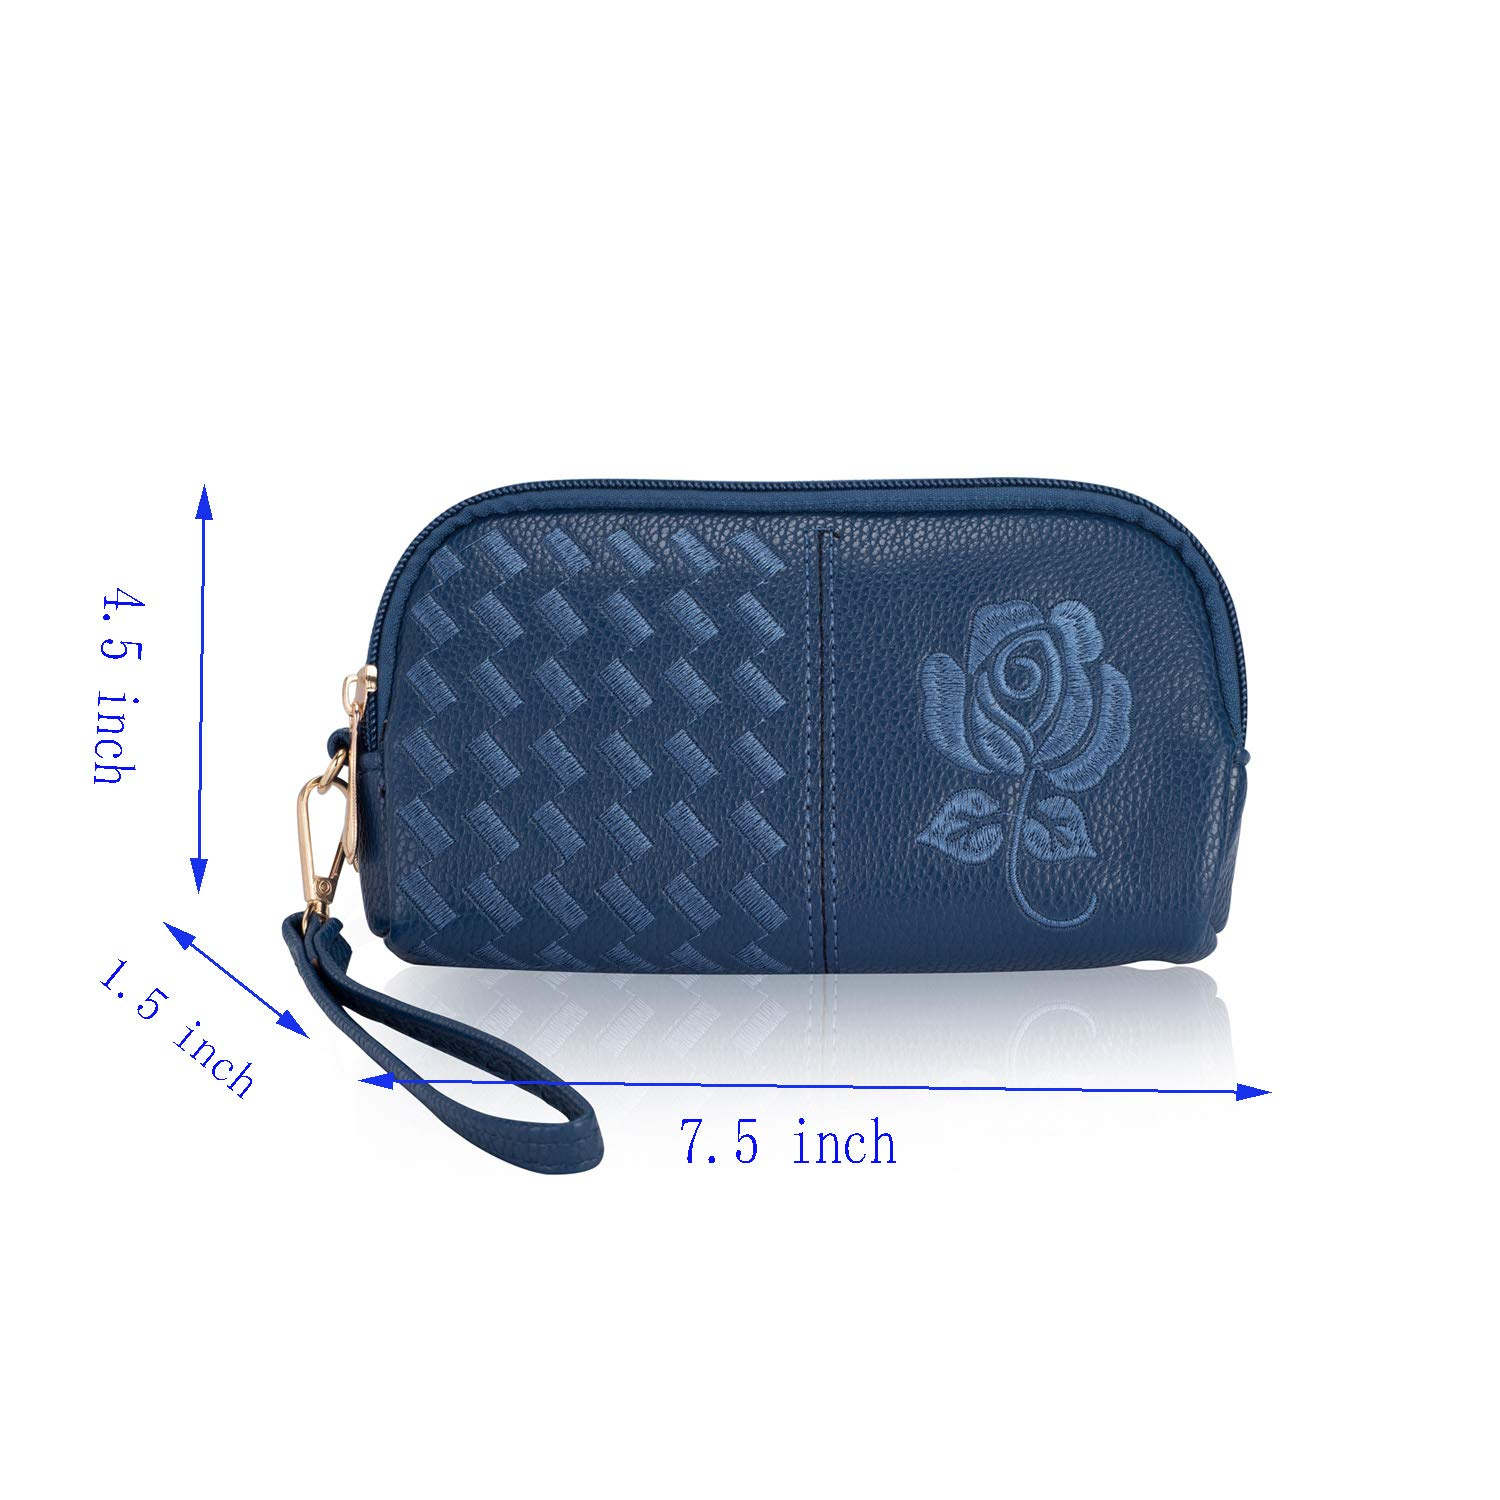 Wristlet Wallet with Strap for Women, Leather Wristlets Phone Purse Clutch for iphone (Wristlet blue) by JZE (Image #2)